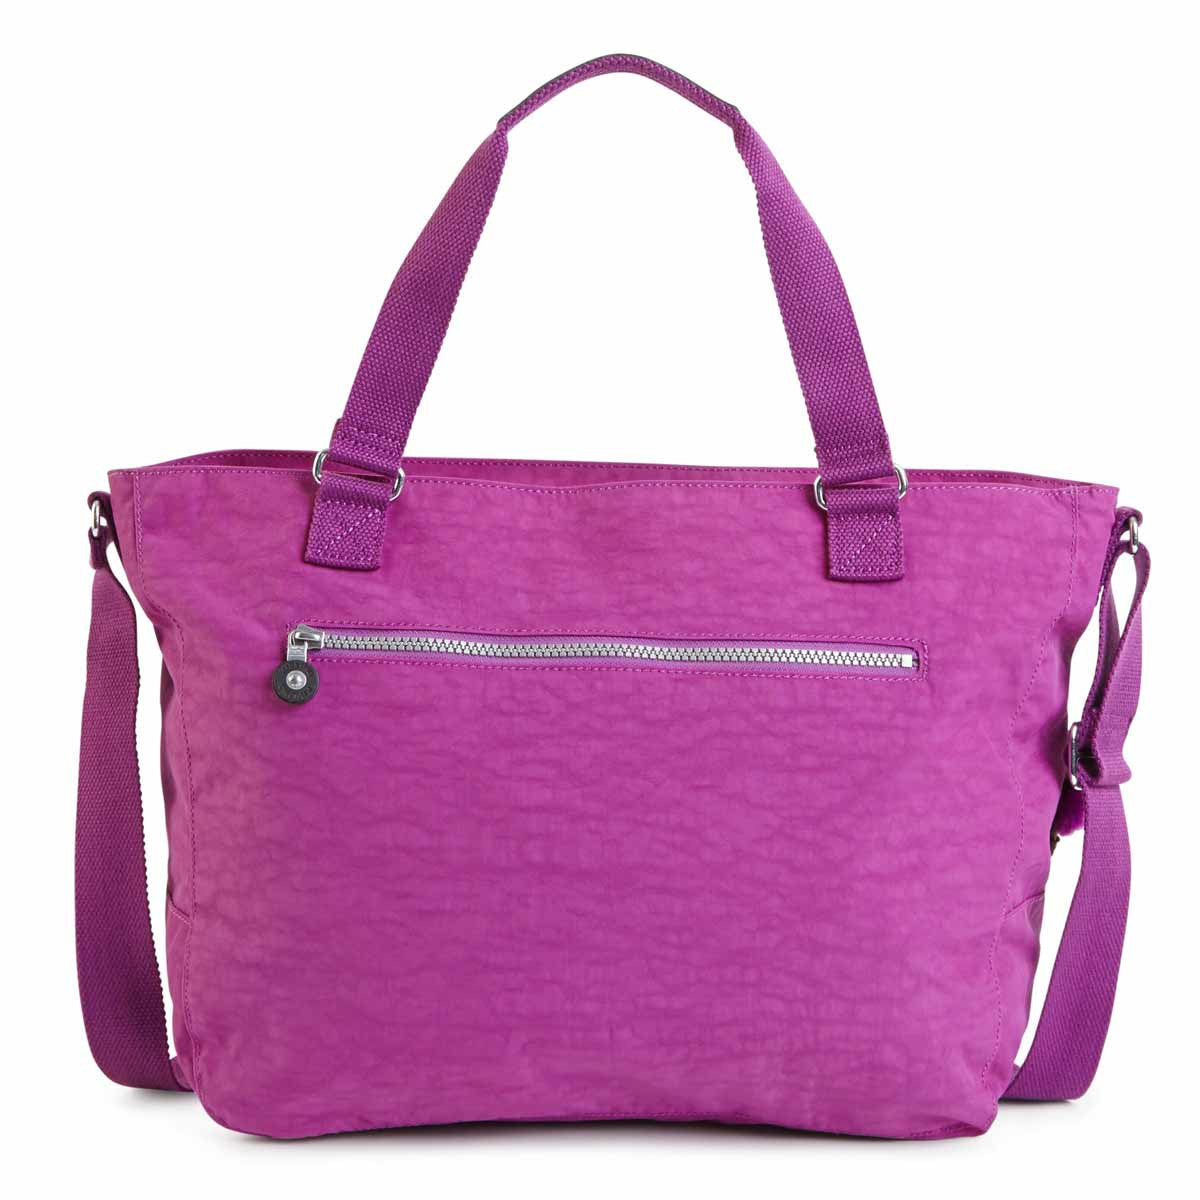 Kipling TM5311-500 Women's Noelle Purple Q Nylon Tote